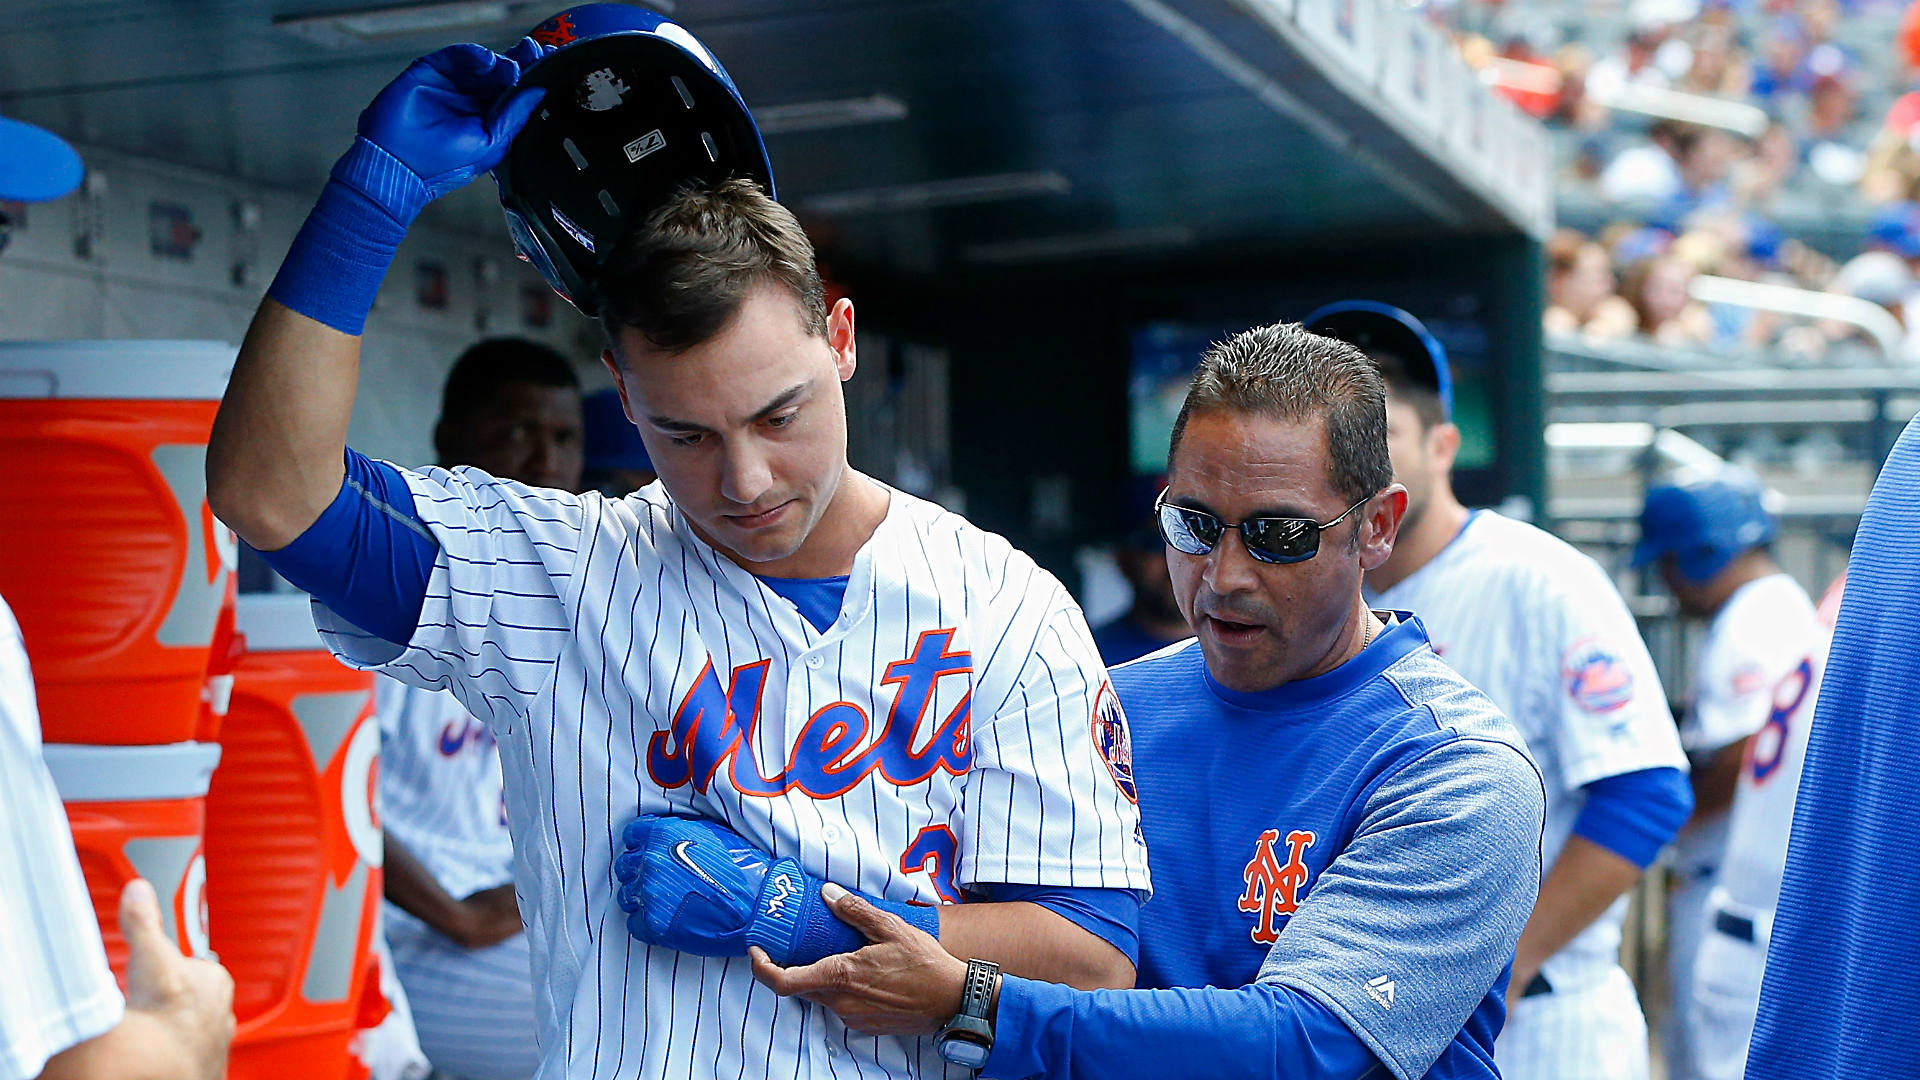 Mets' Conforto dislocates shoulder after swinging in the 5th